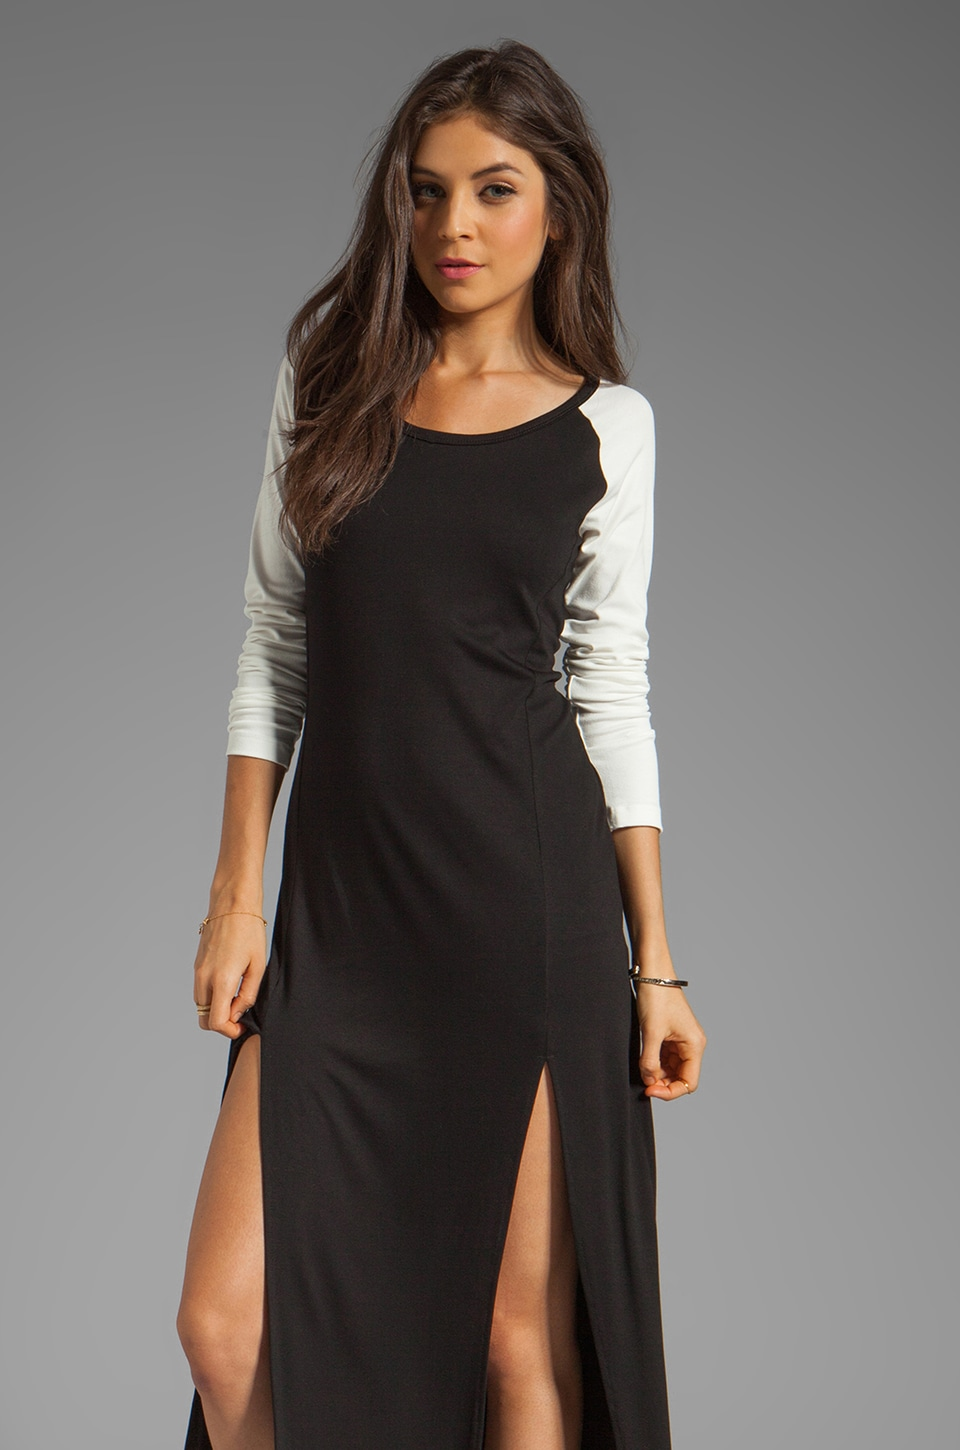 LNA Prescilla Dress in Black/Eggshell